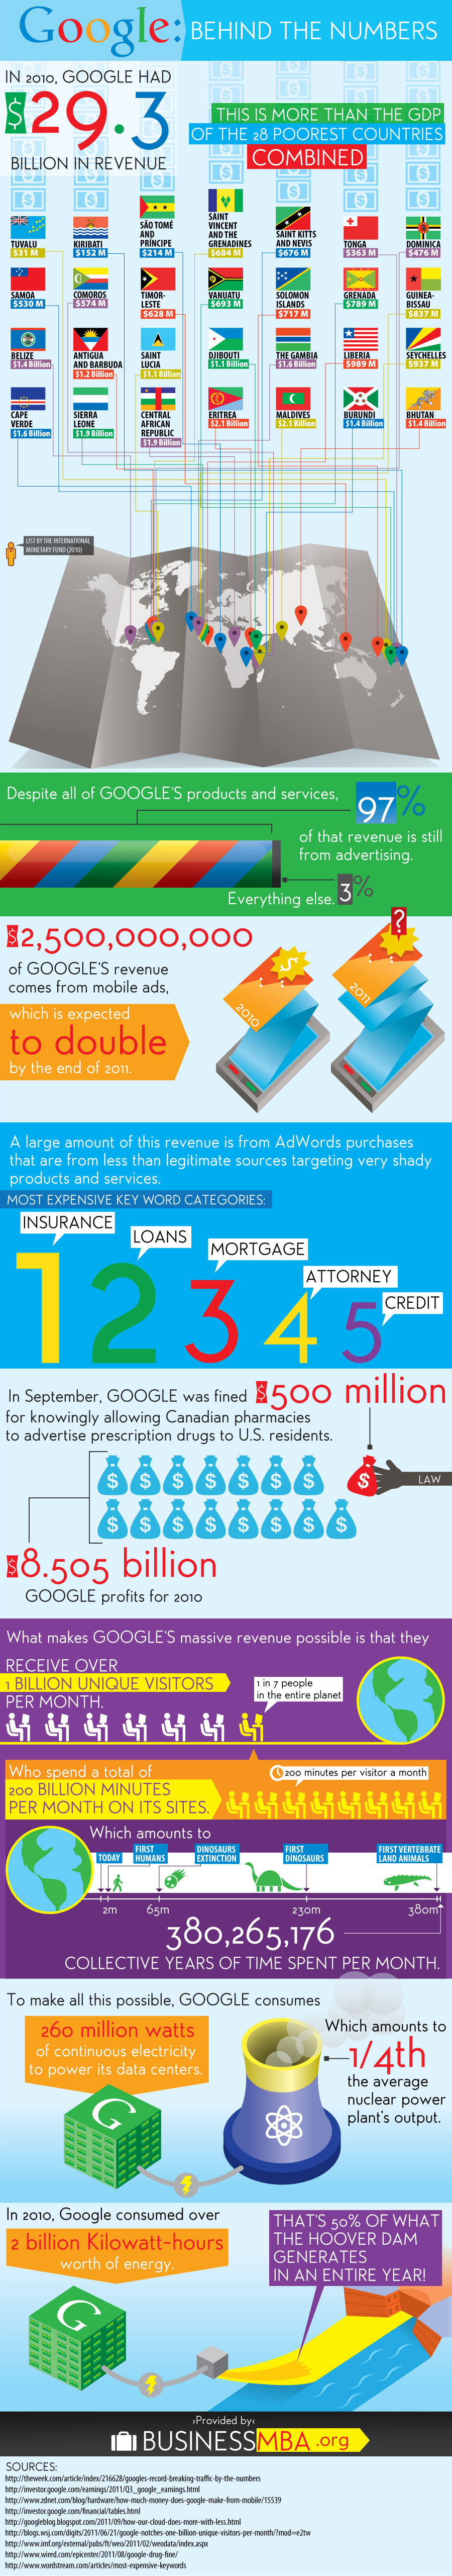 Infographic: How Profitable is Google?